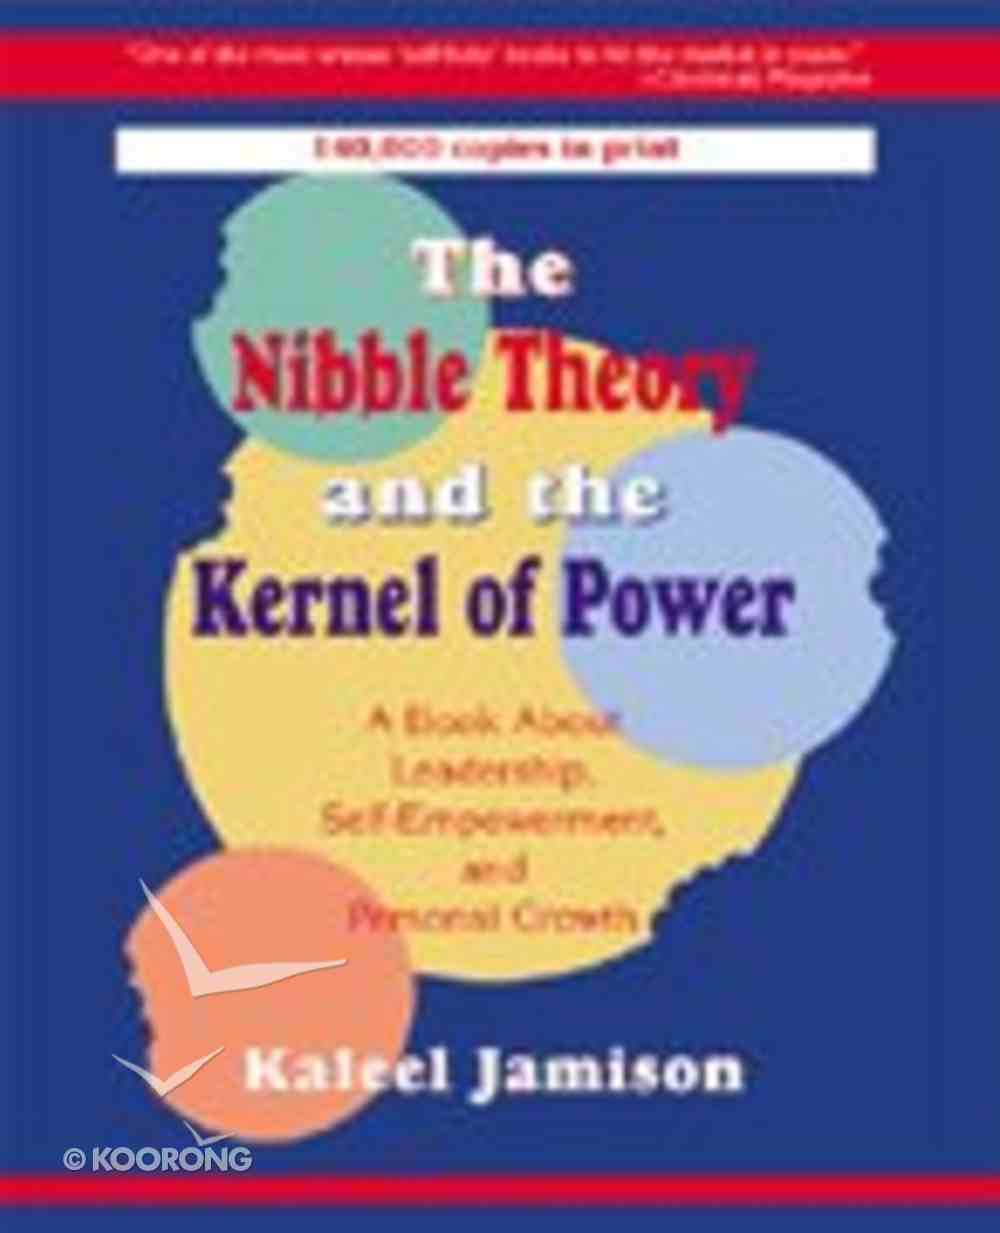 The Nibble Theory and the Kernel of Power Paperback